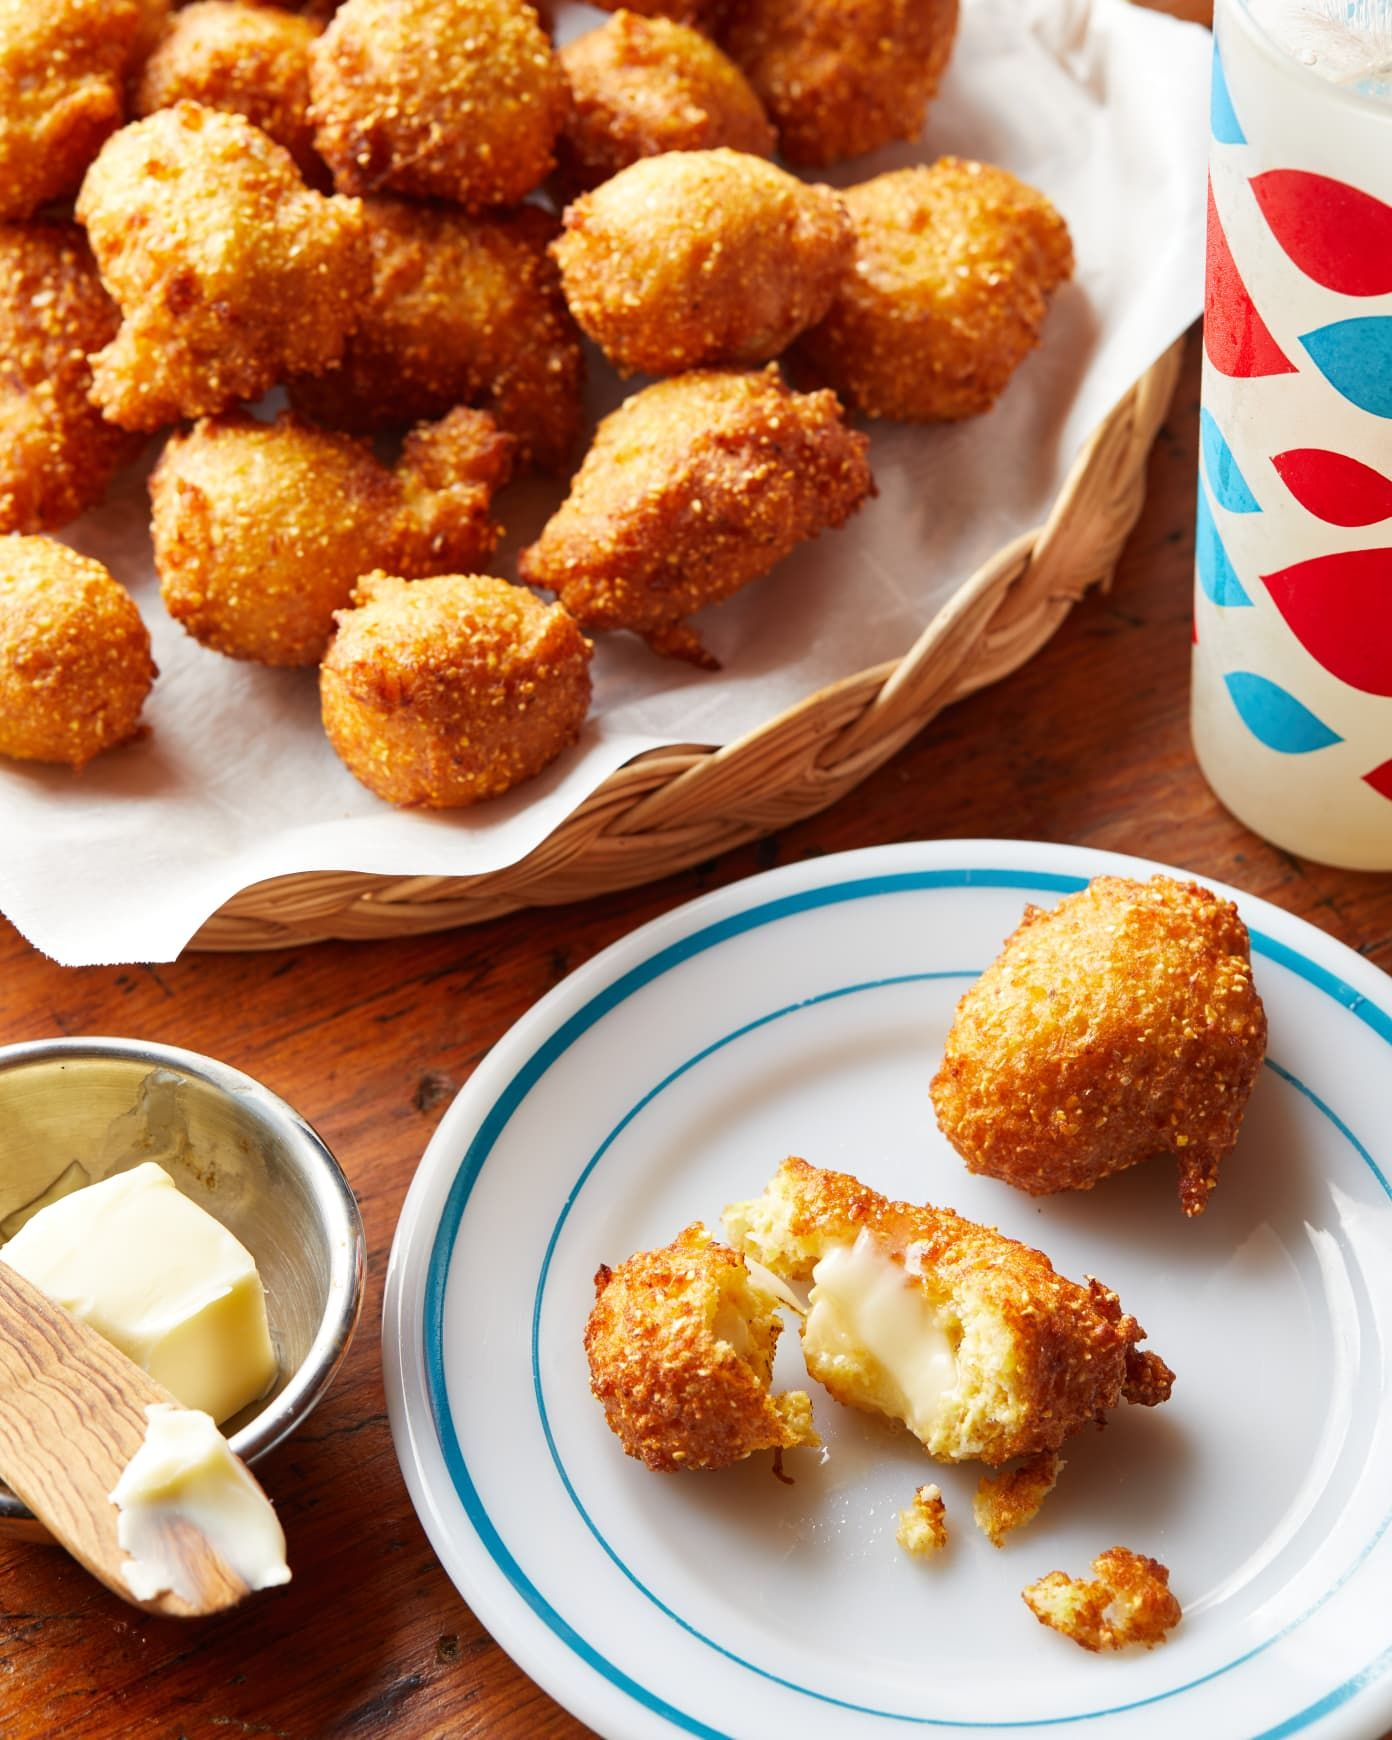 Here S How To Make The Absolute Best Southern Hush Puppies Recipe Hush Puppies Recipe Crab Cakes Food